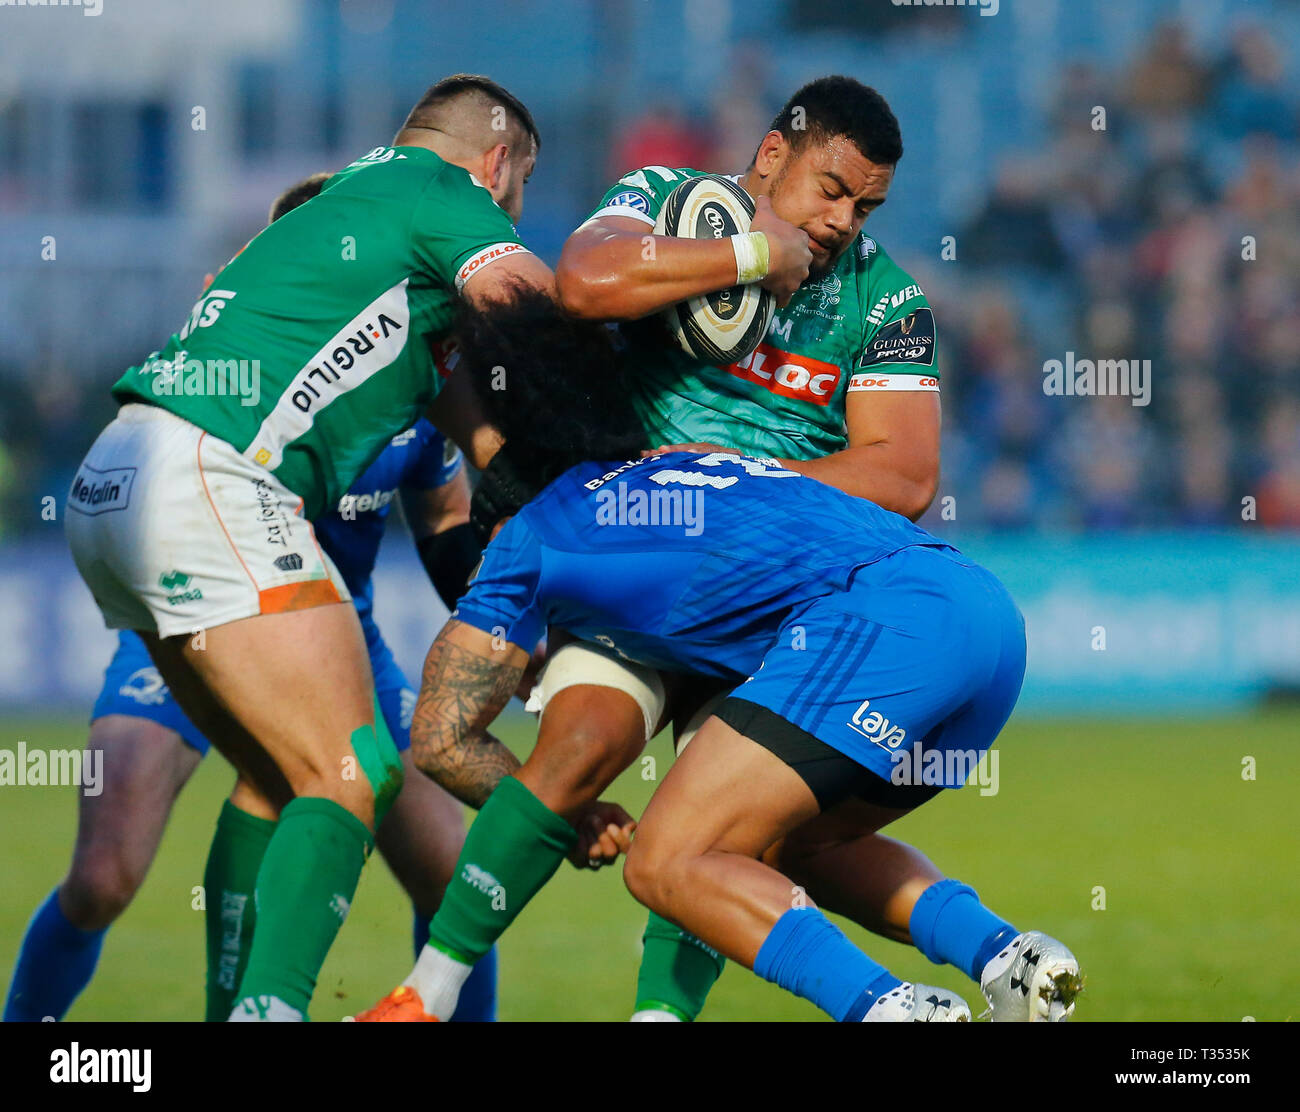 RDS Arena, Dublin, Ireland. 6th Apr, 2019. Guinness Pro14 rugby, Leinster versus Benetton; Toa Halafihi of Benetton is tackled by Joe Tomane of Leinster Credit: Action Plus Sports/Alamy Live News - Stock Image